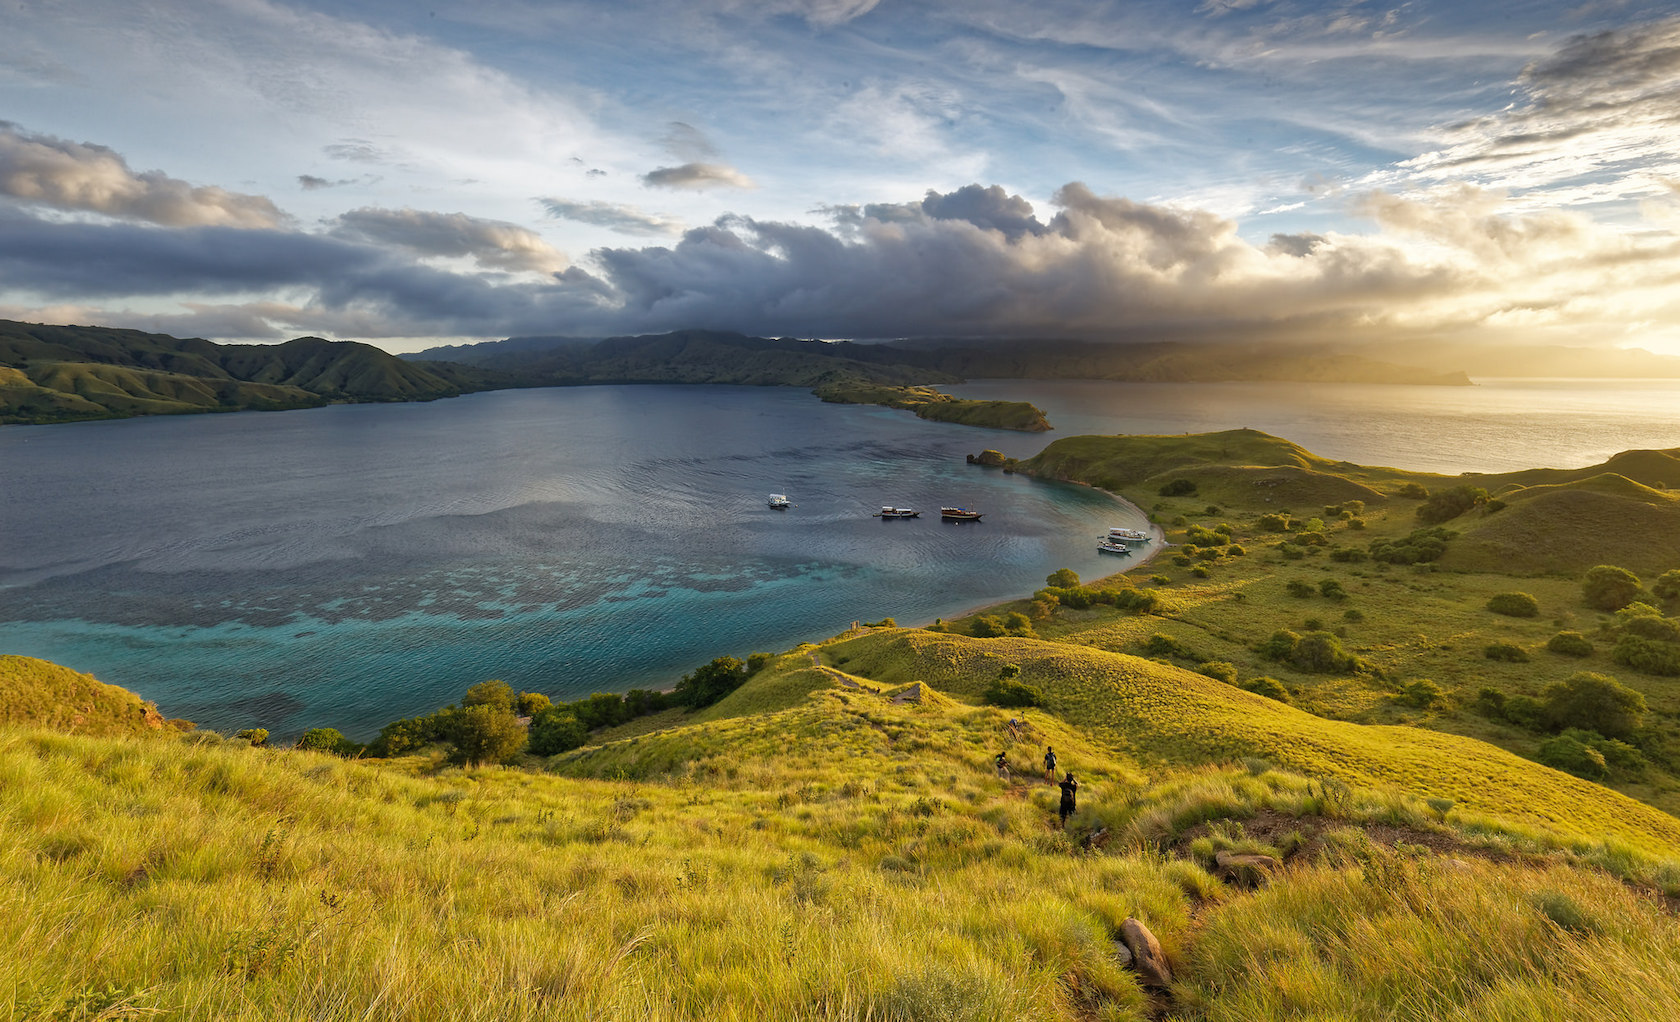 Komodo National Park The Beginner's Guide To Planning A Trip